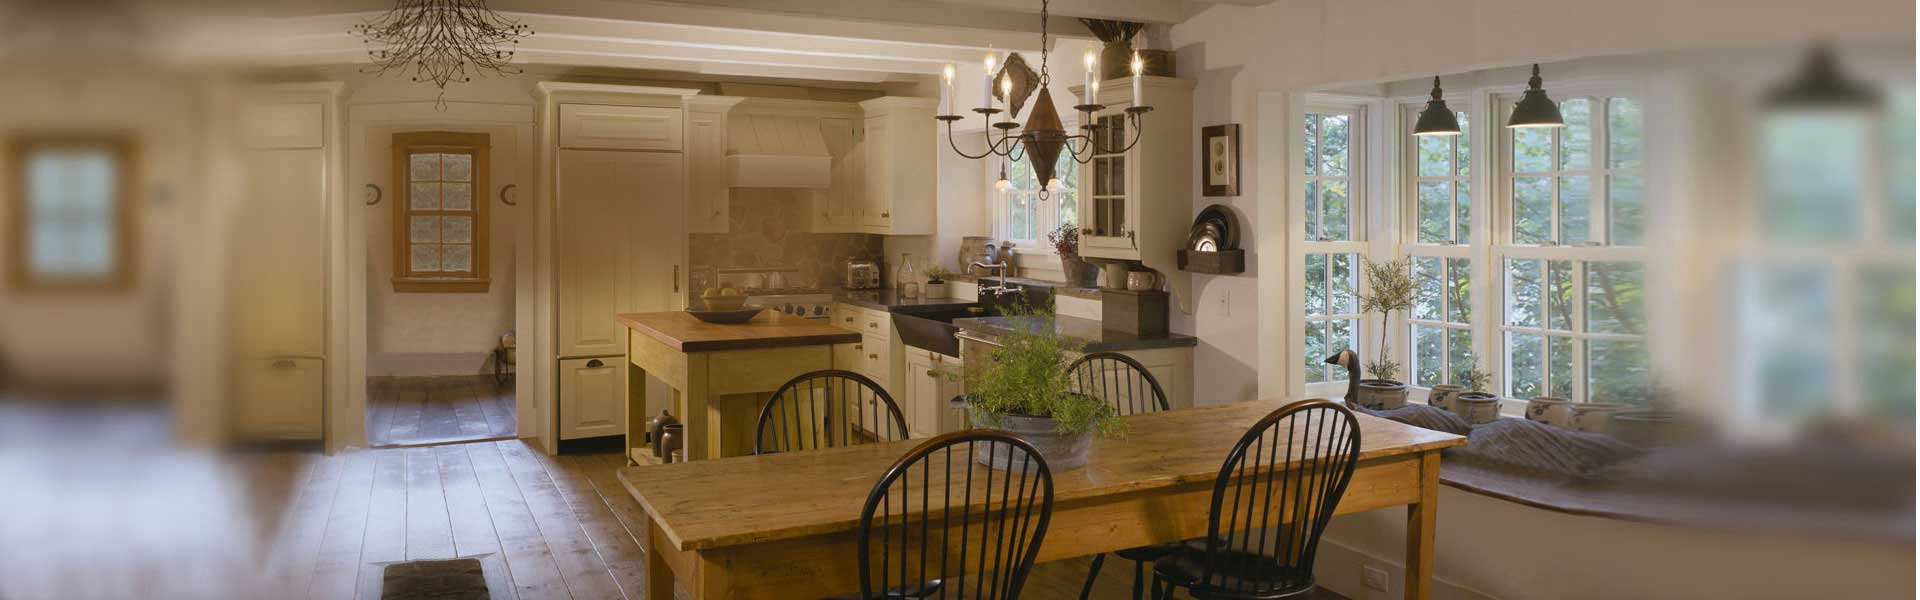 Kitchens by Houses and Barns by John Libby